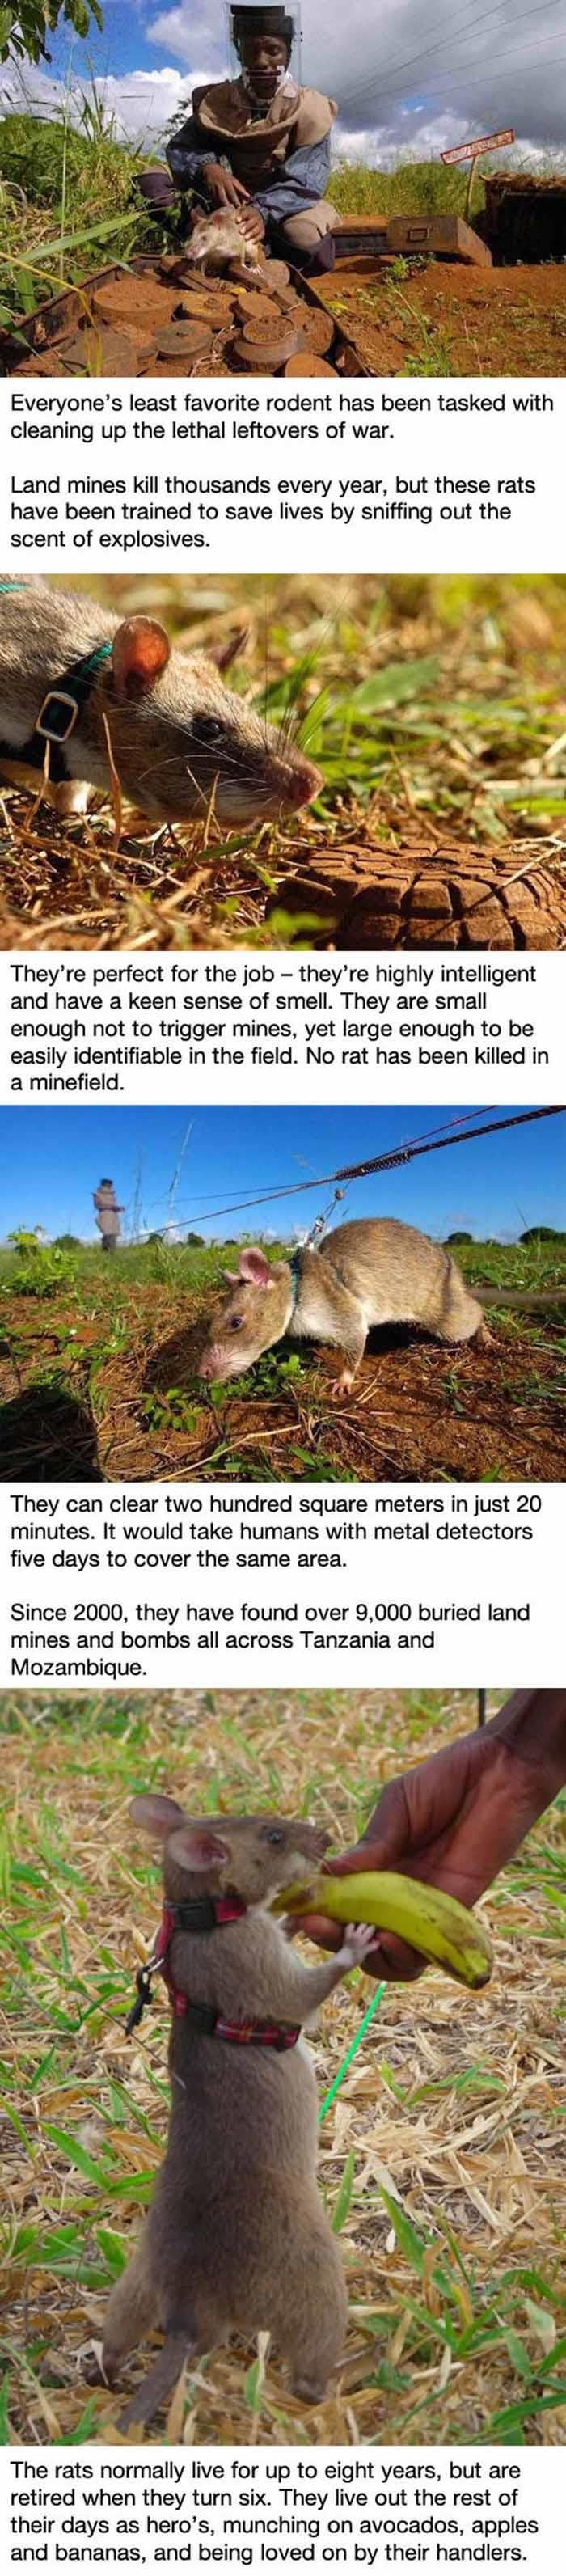 Amazing Rats That Are Saving Lives  4 Pics